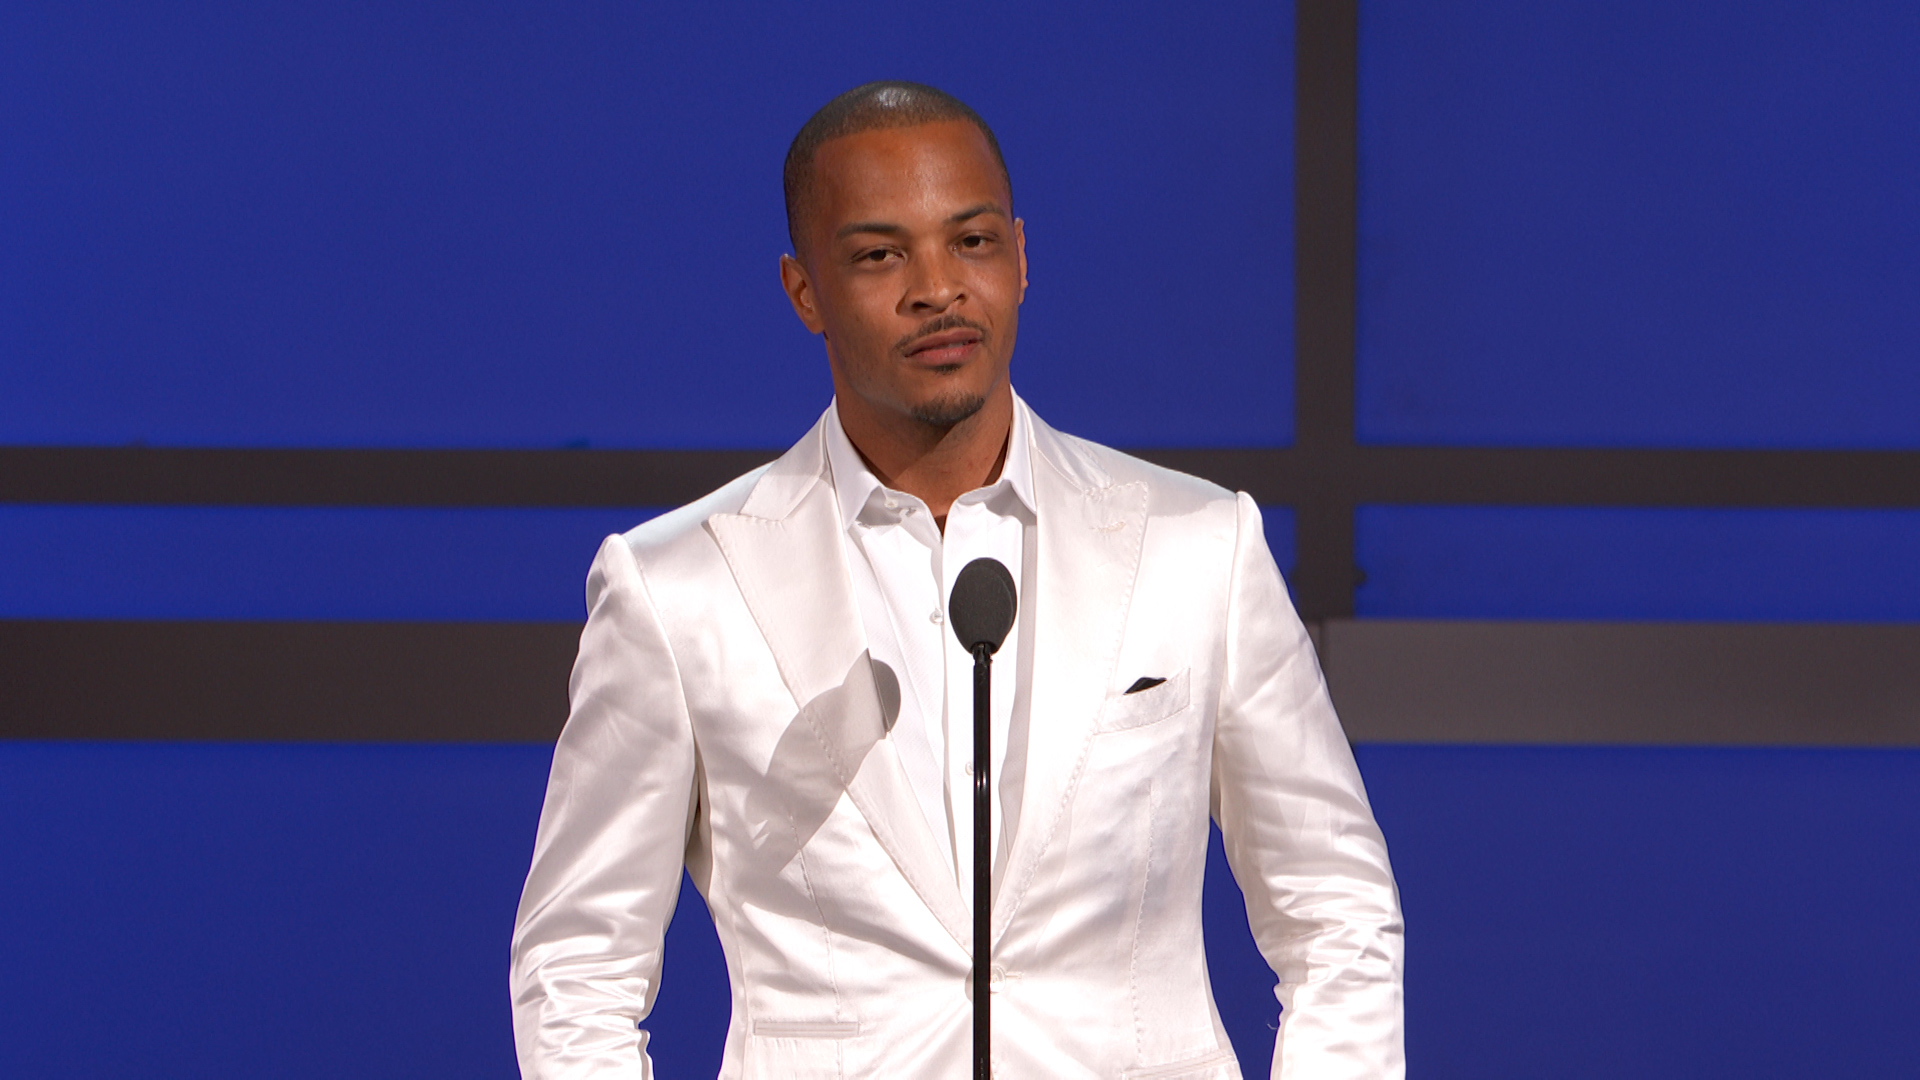 T.I. Partners With Atlanta's Jail Task Force to Find Positive Uses for City's Jails